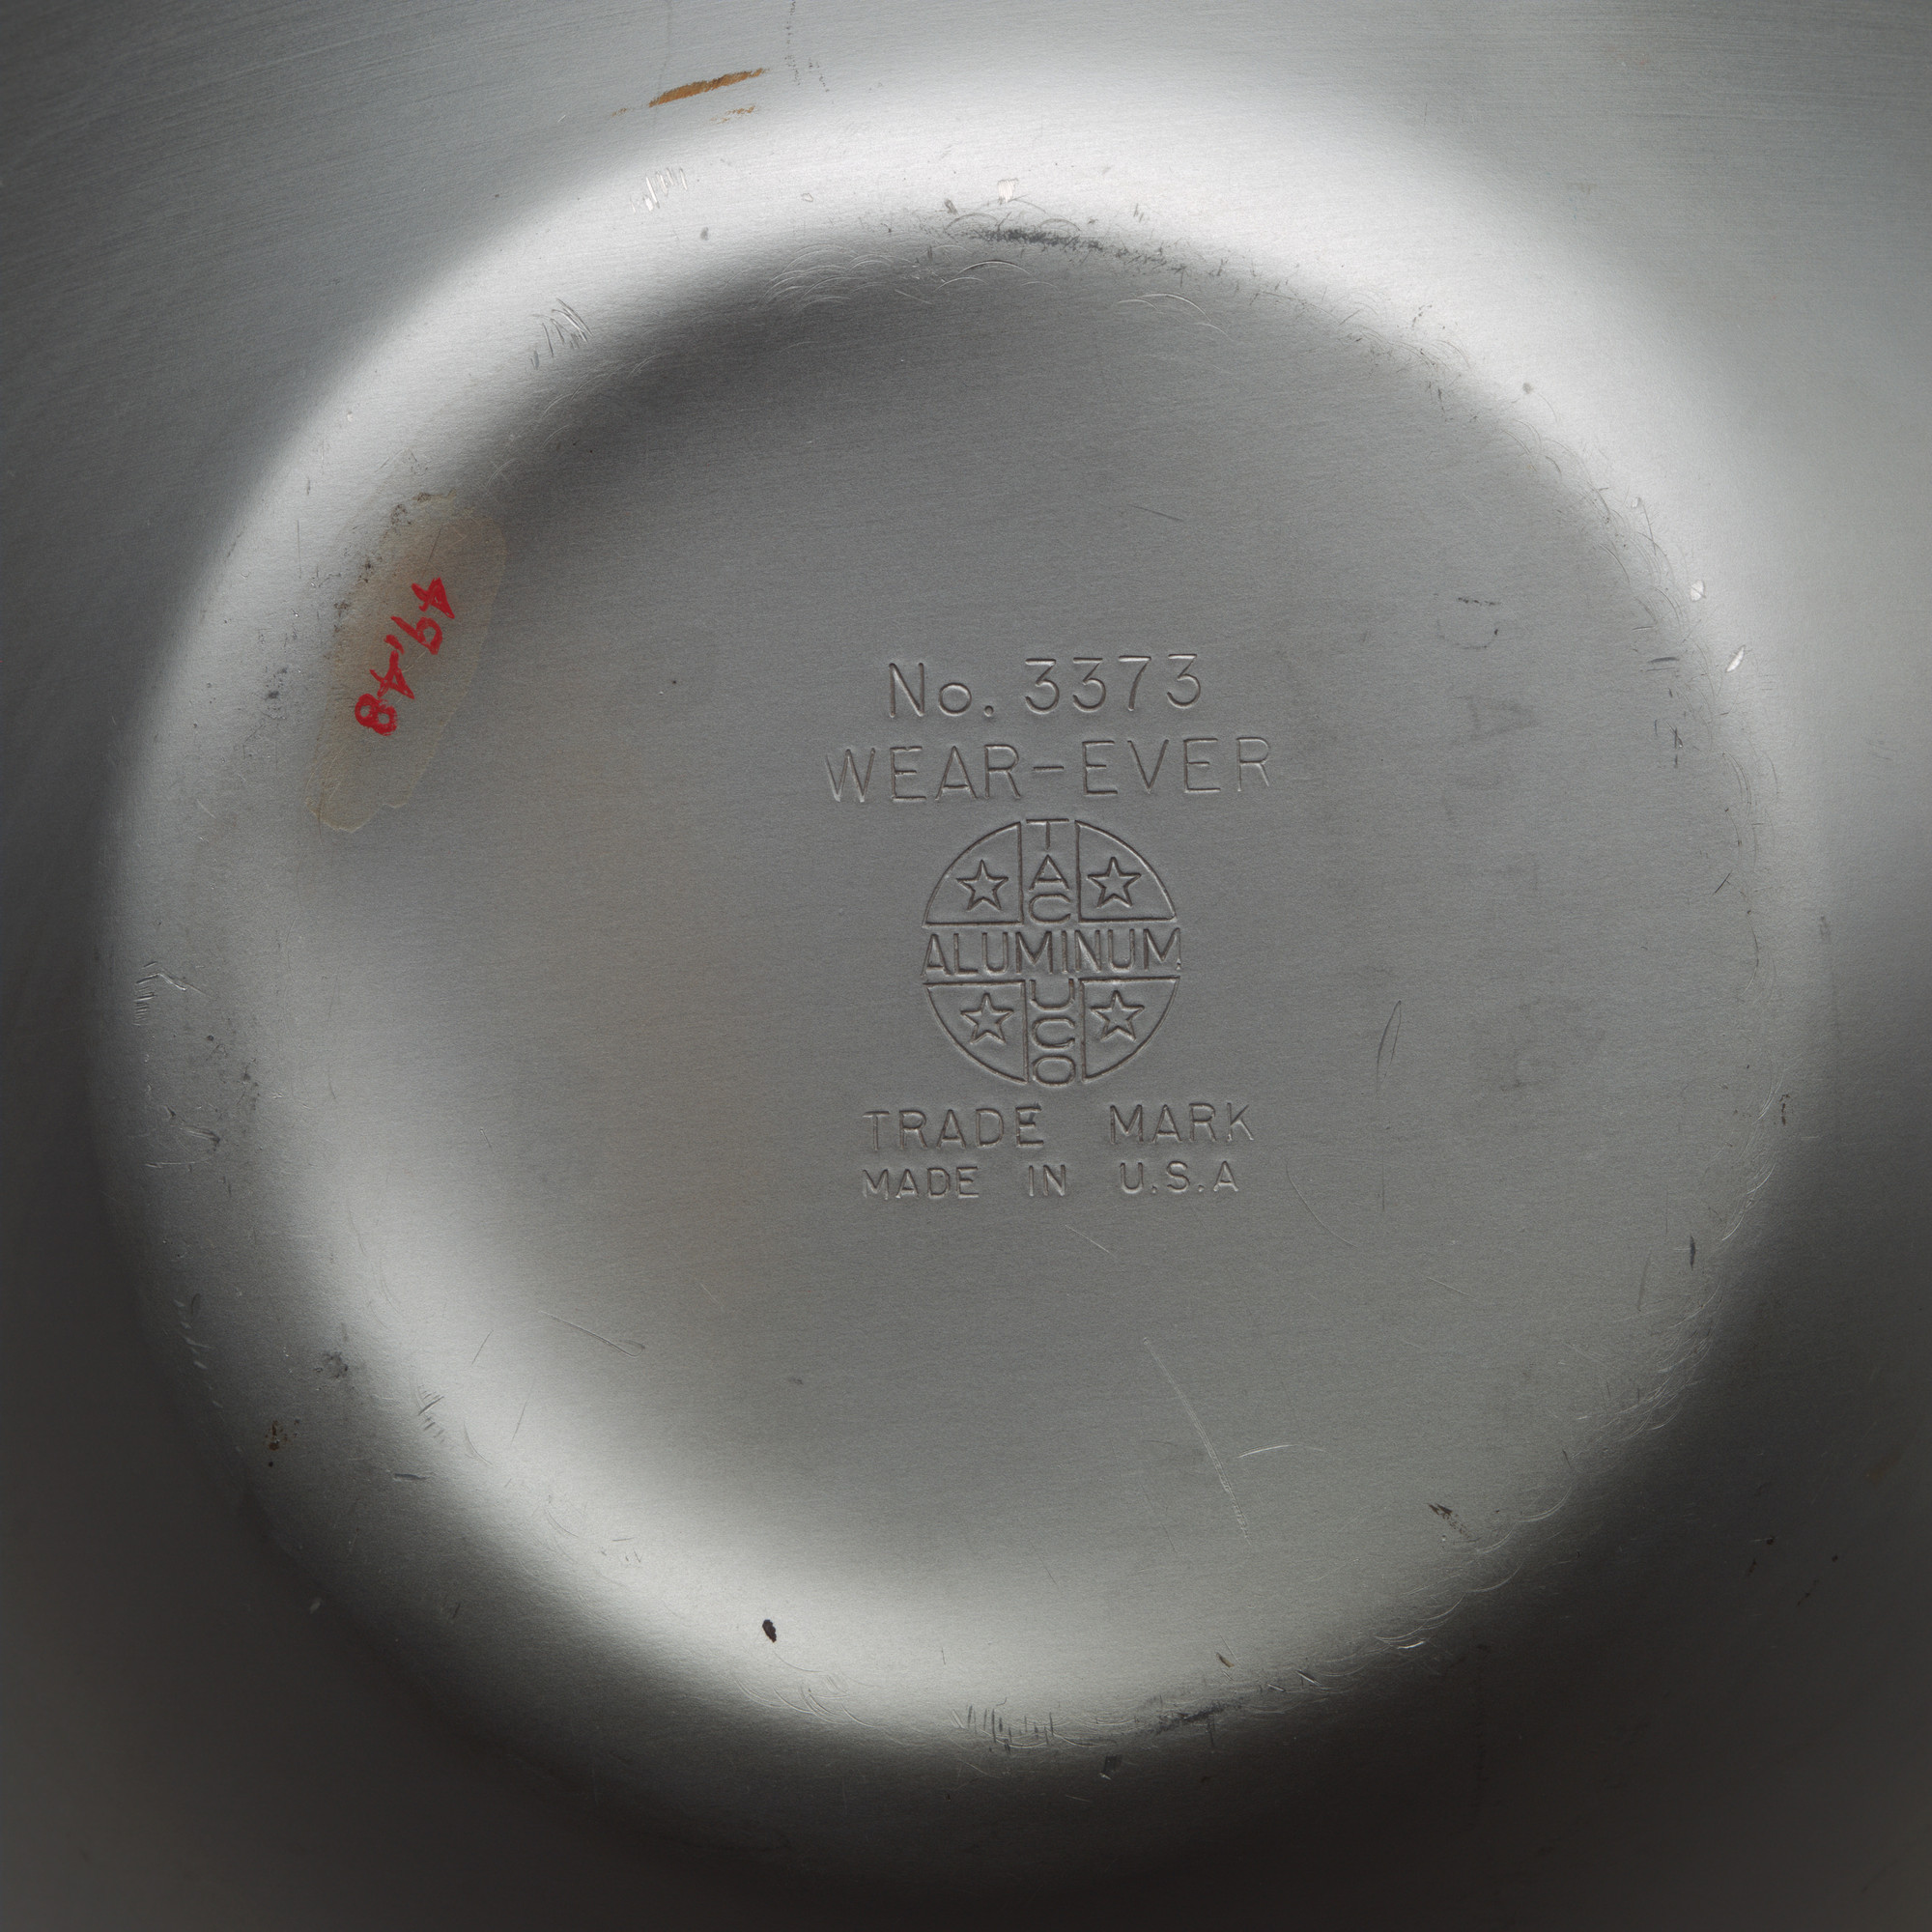 The Aluminum Cooking Utensil Co., New York, NY. Wear-Ever Mixing Bowl. Unknown